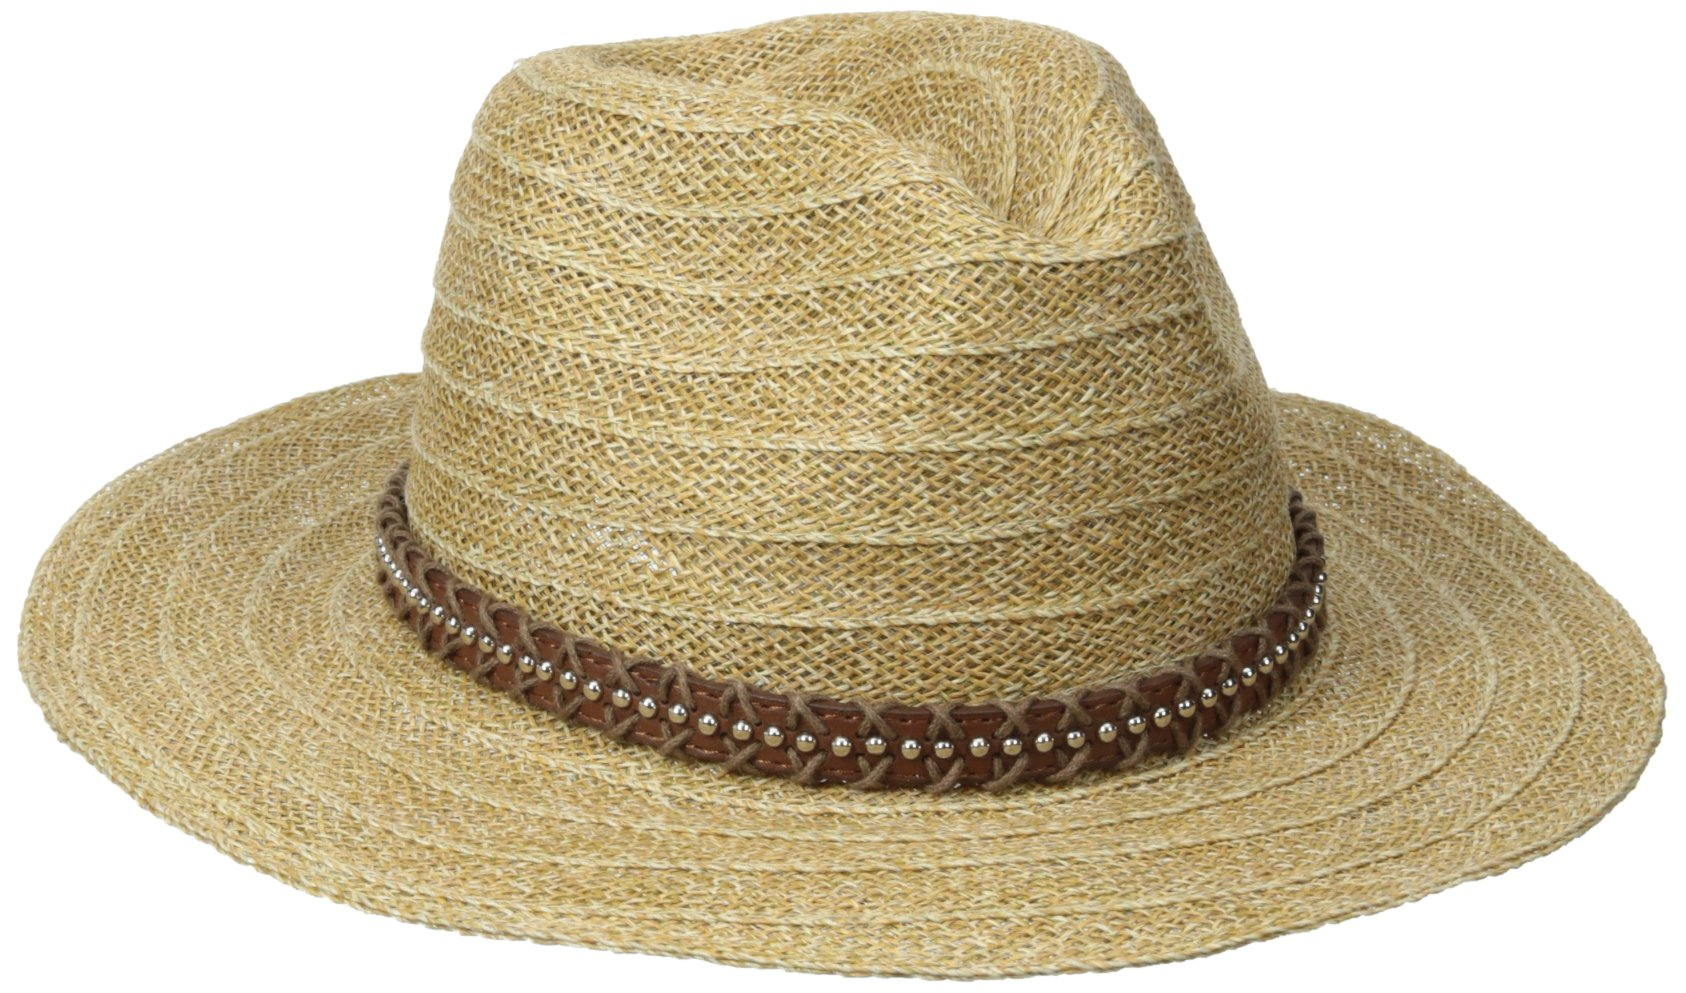 San Diego Hat Company Women's Wide Brim Leather Studded Fedora, Natural, One Size